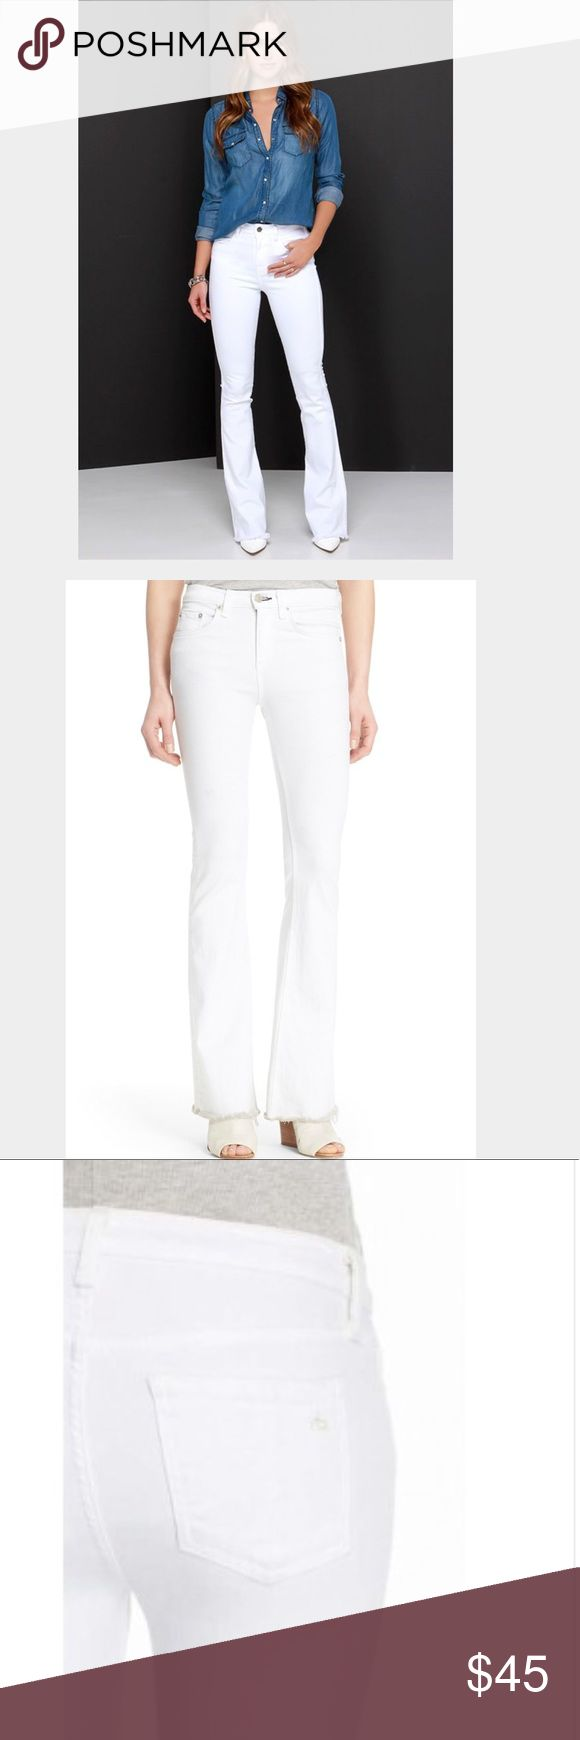 rag & bone || beach white high rise leggings ❗️DEFECT! SEE PICS❗️Summer may not be endless, but your legs look it in figure-flattering high-rise jeans cut slim through the thigh before flaring out into a retro-chic bell-bottom silhouette below the knee. Casual frayed cuffs finish this pristine white style, which you'll reach for time and time again for your favorite warm-weather looks. Zip fly with button closure Five-pocket style. 43% viscose, 33% cotton, 17% Tencel(R) lyocell, 5%…